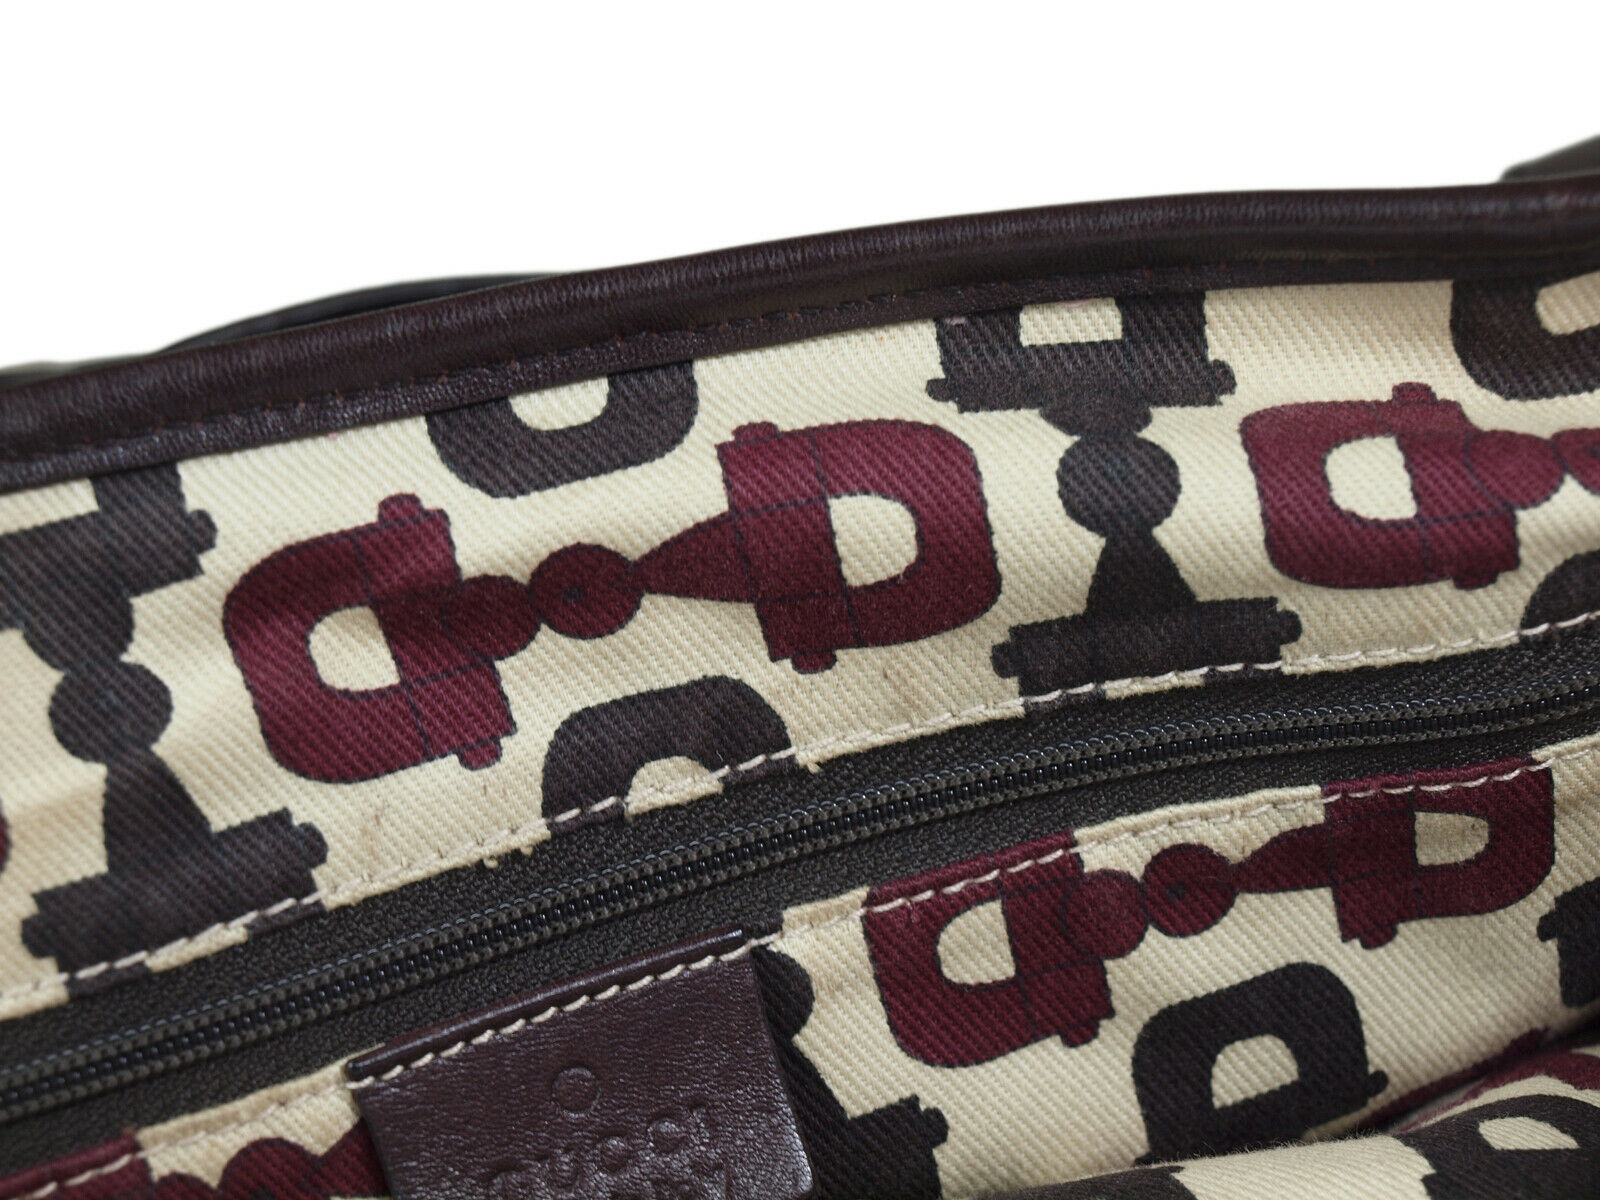 Auth GUCCI Guccissima Leather Dark Brown Shoulder Bag GT2152  image 12